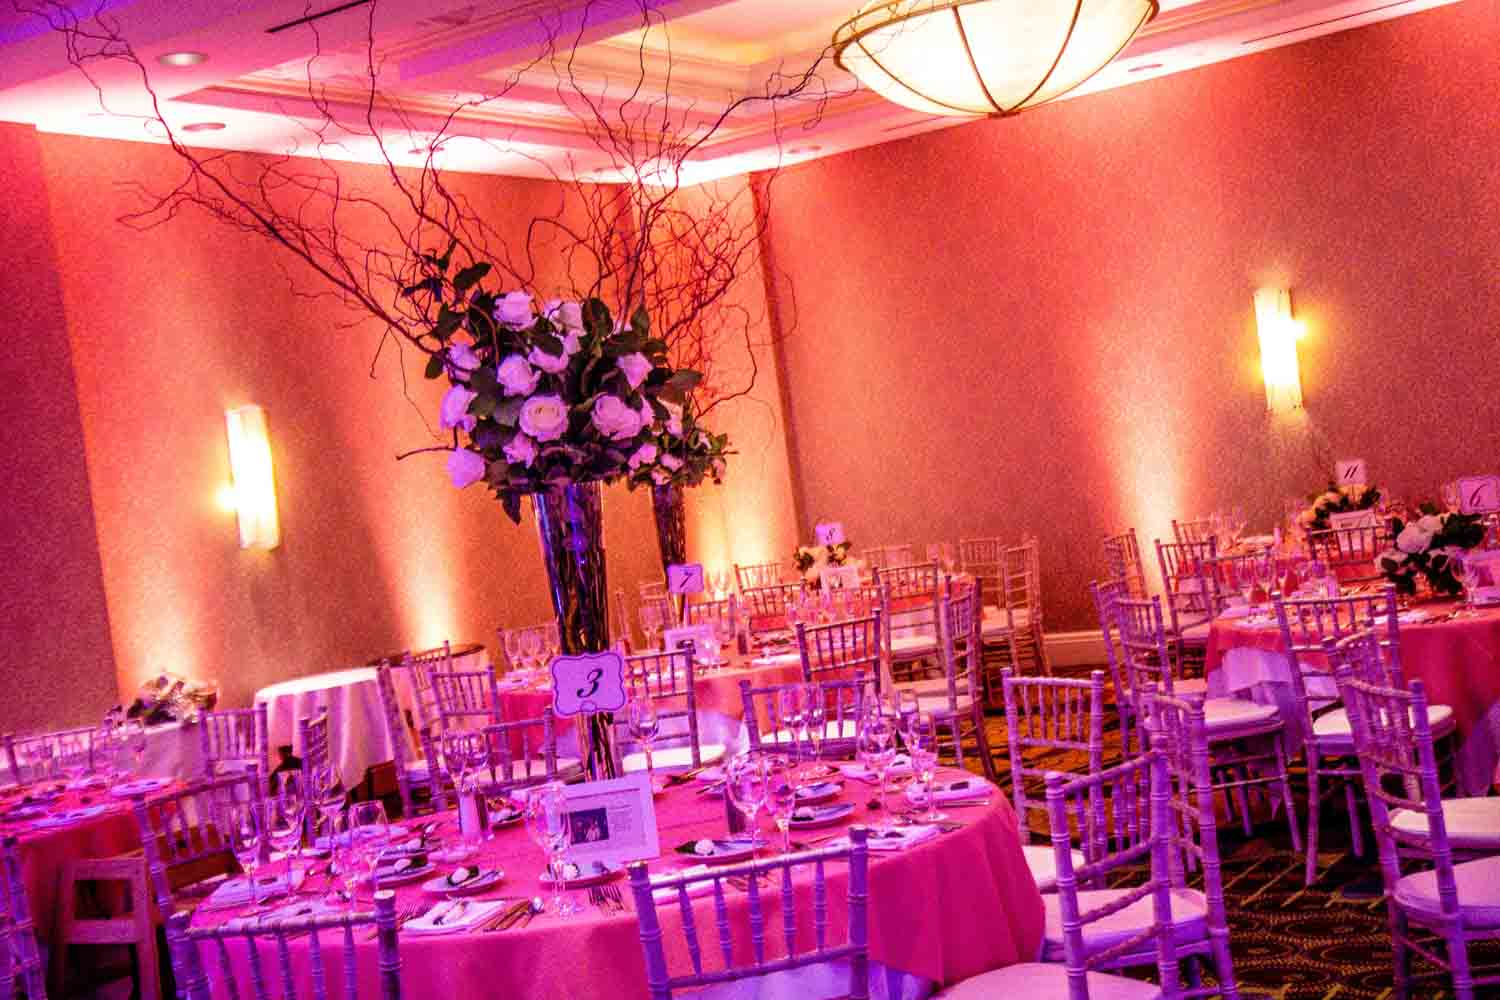 Wedding Setup with Centerpiece